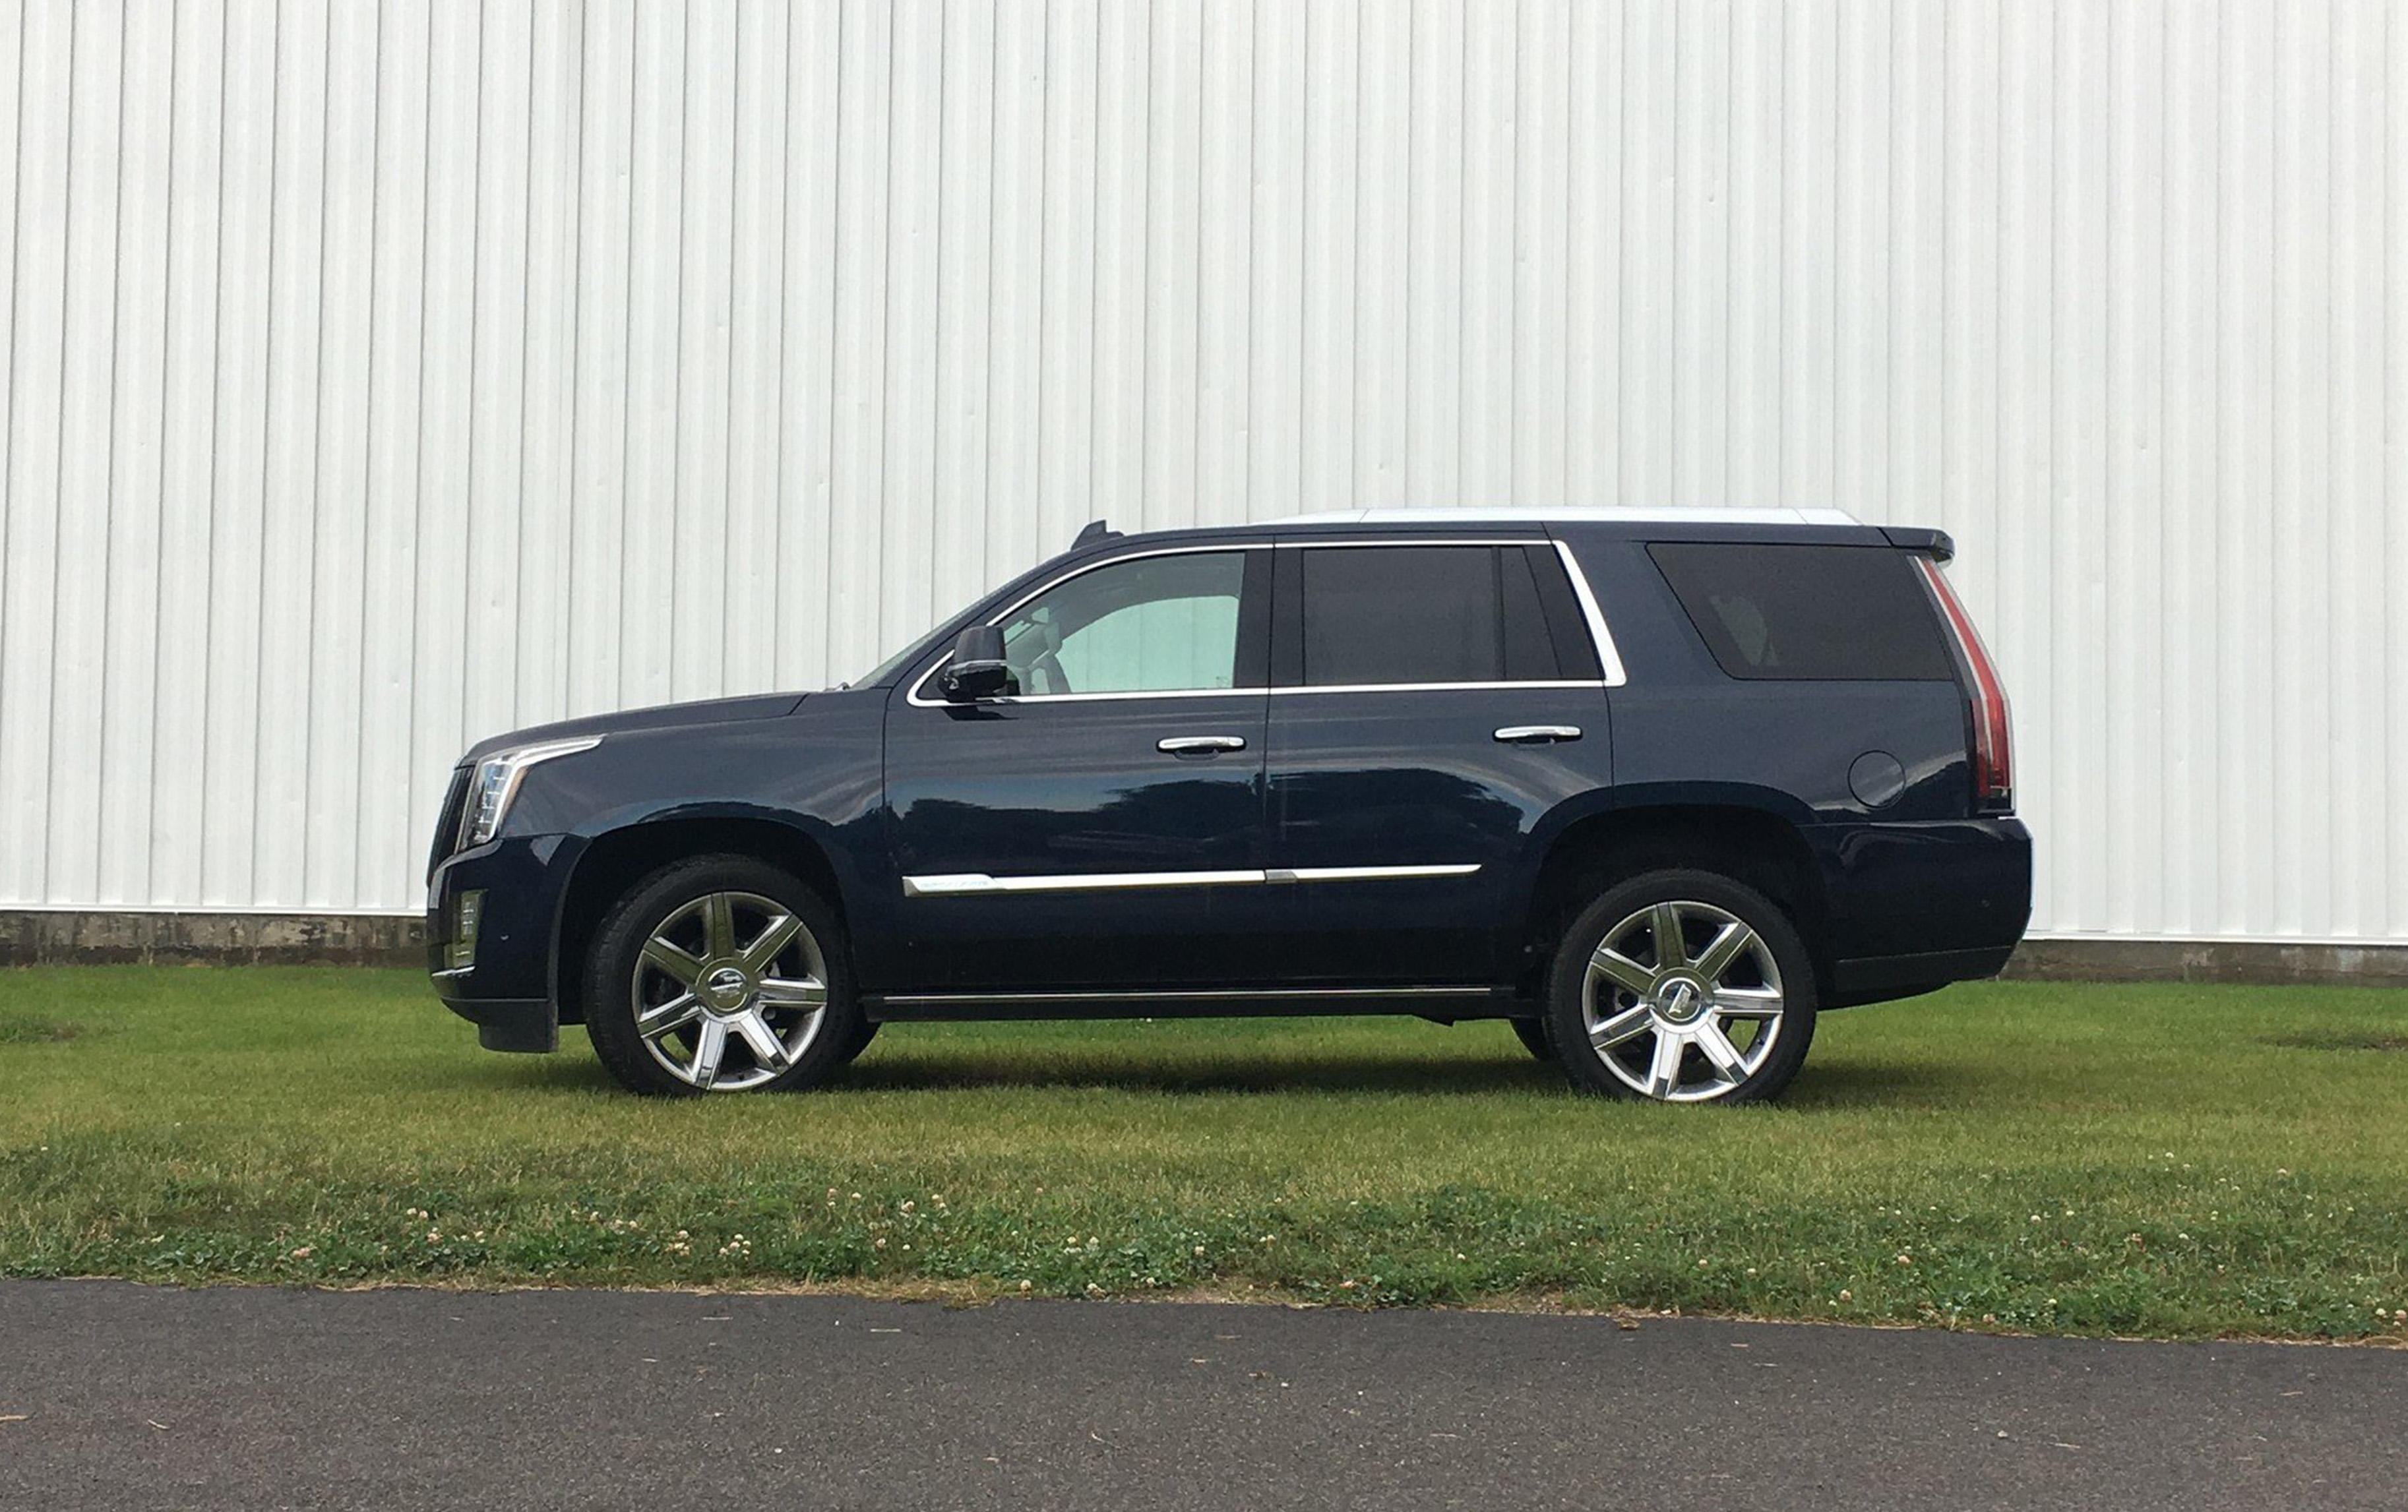 auto review 2017 cadillac escalade full size suv comes up short hamodia jewish and israel news. Black Bedroom Furniture Sets. Home Design Ideas